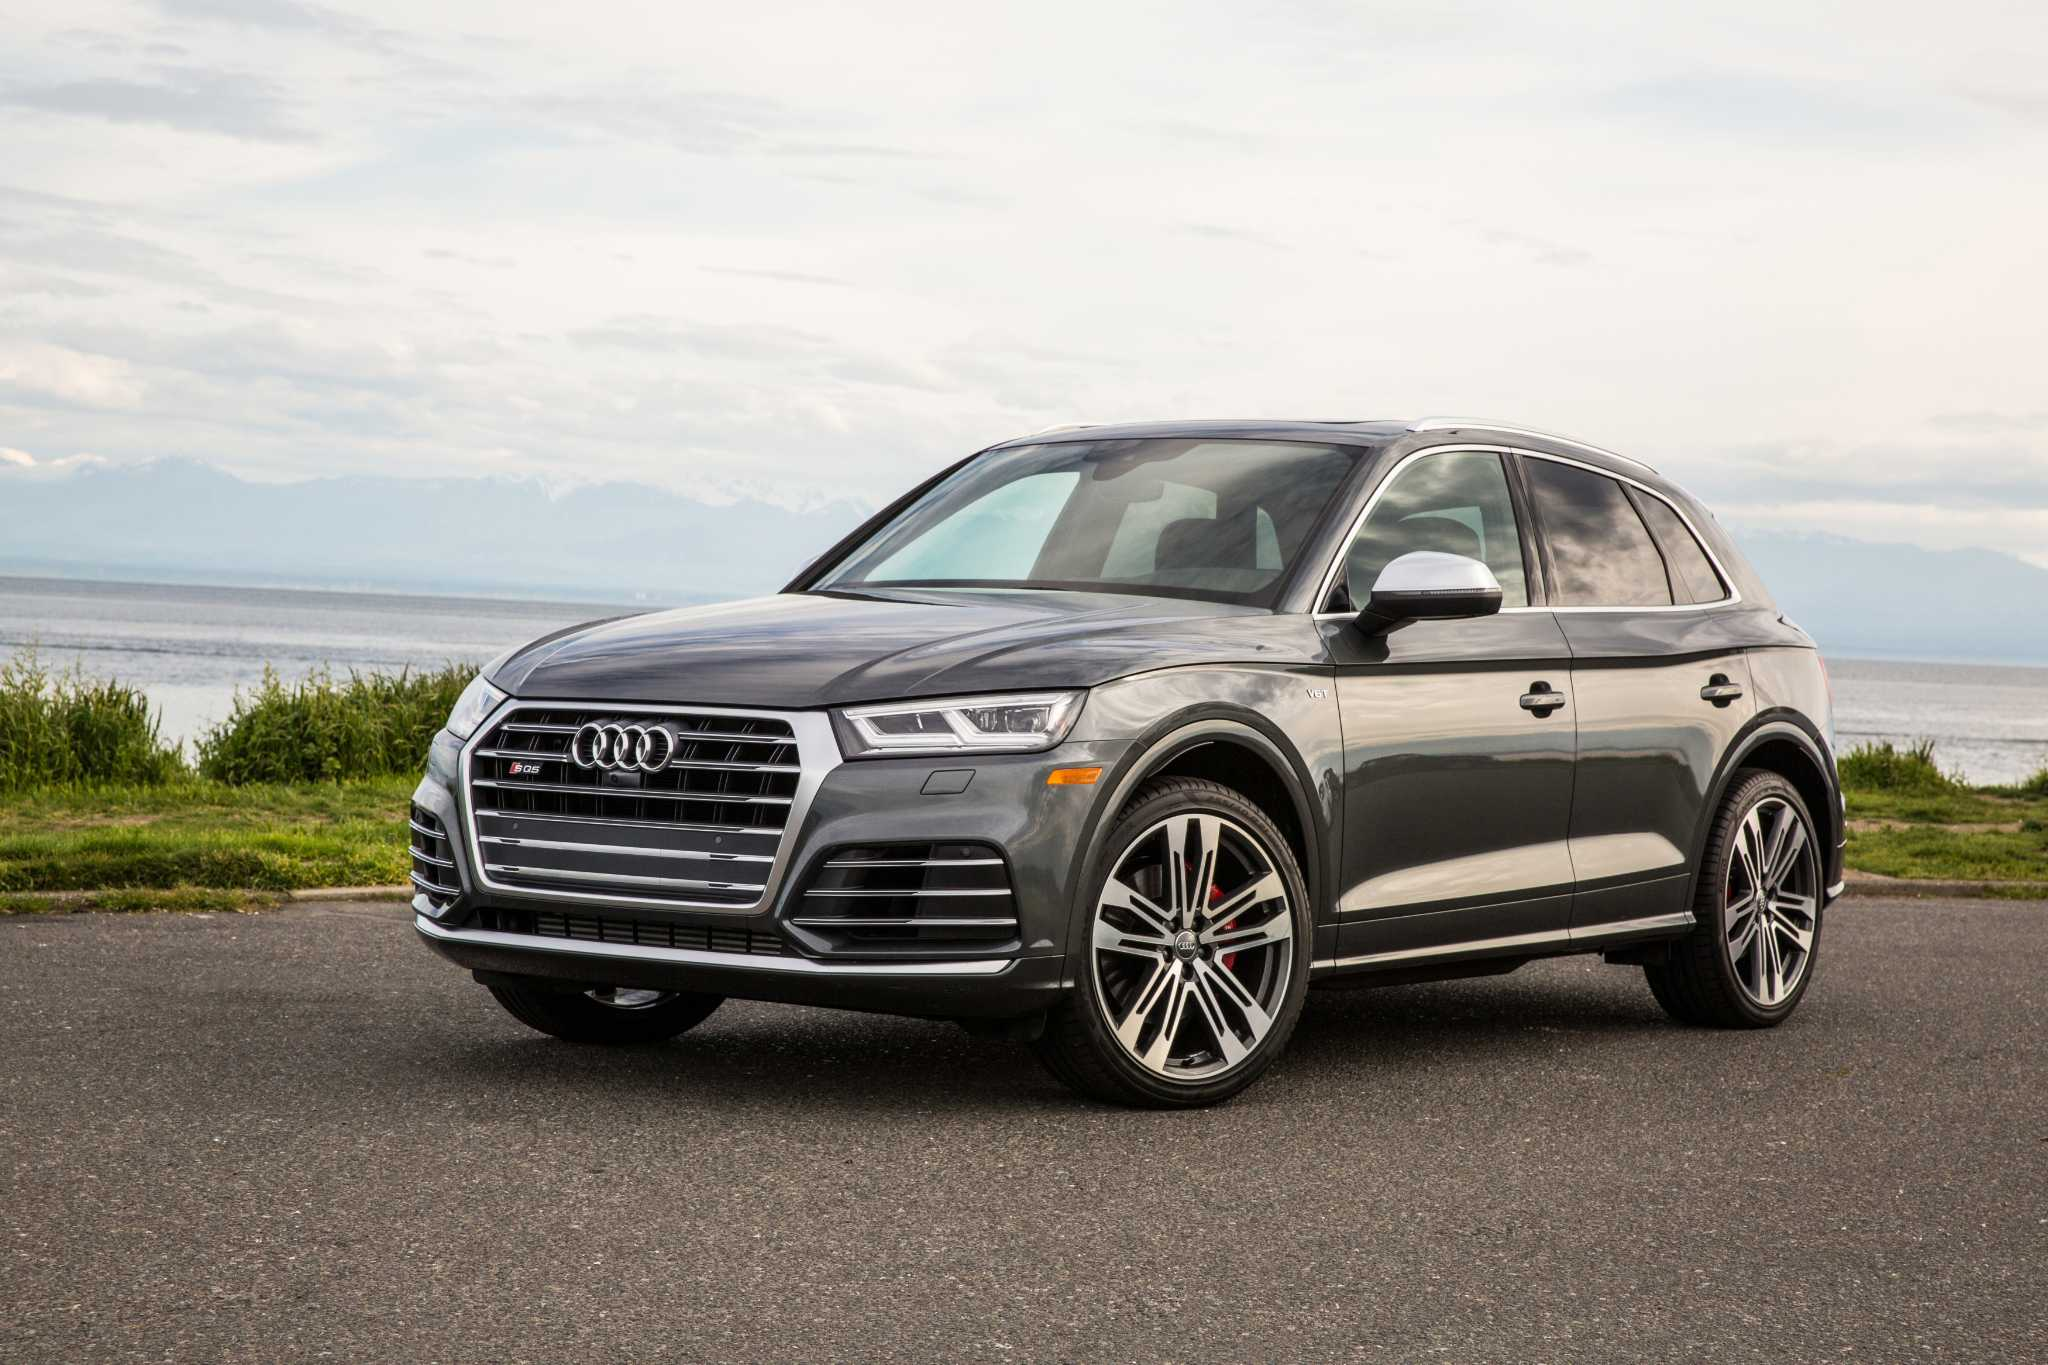 A Blue Sky Audi Suv With A Price Way Up Yonder